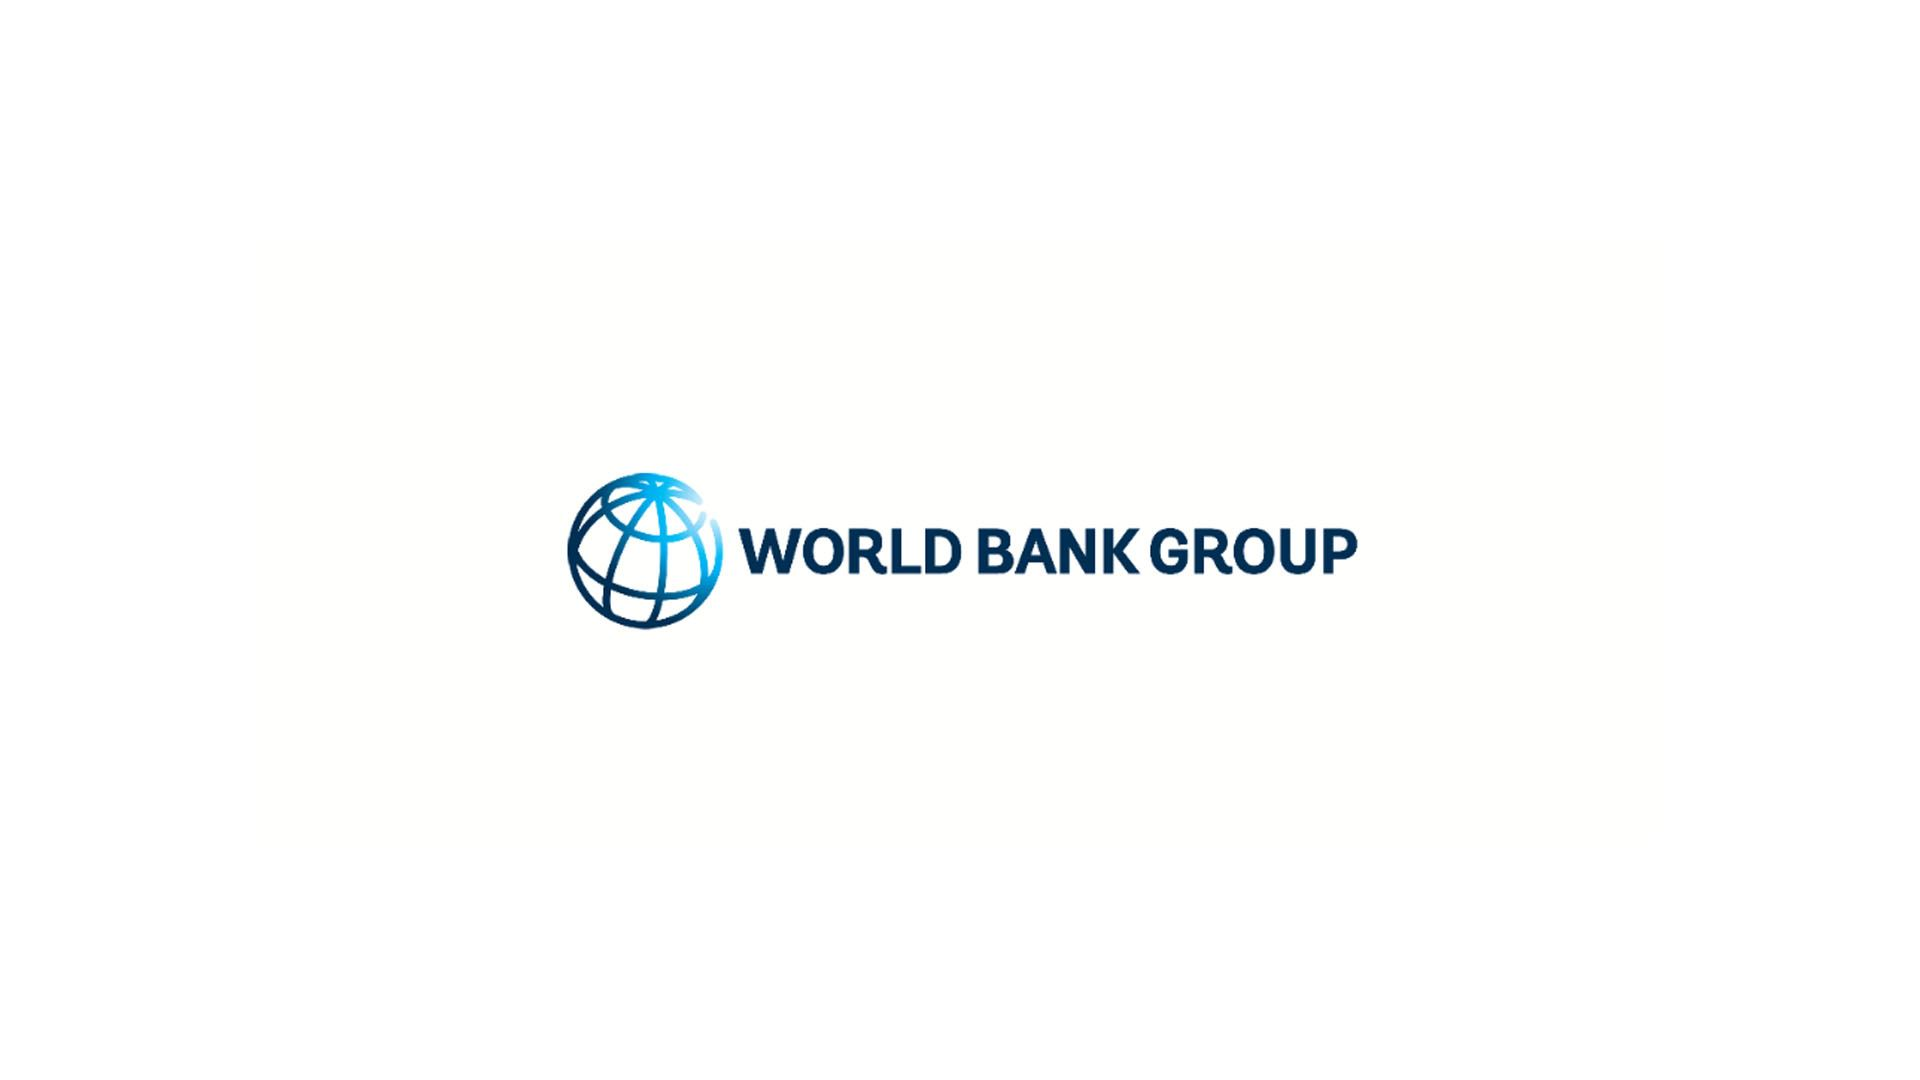 World Bank Group - Young Professionals Program